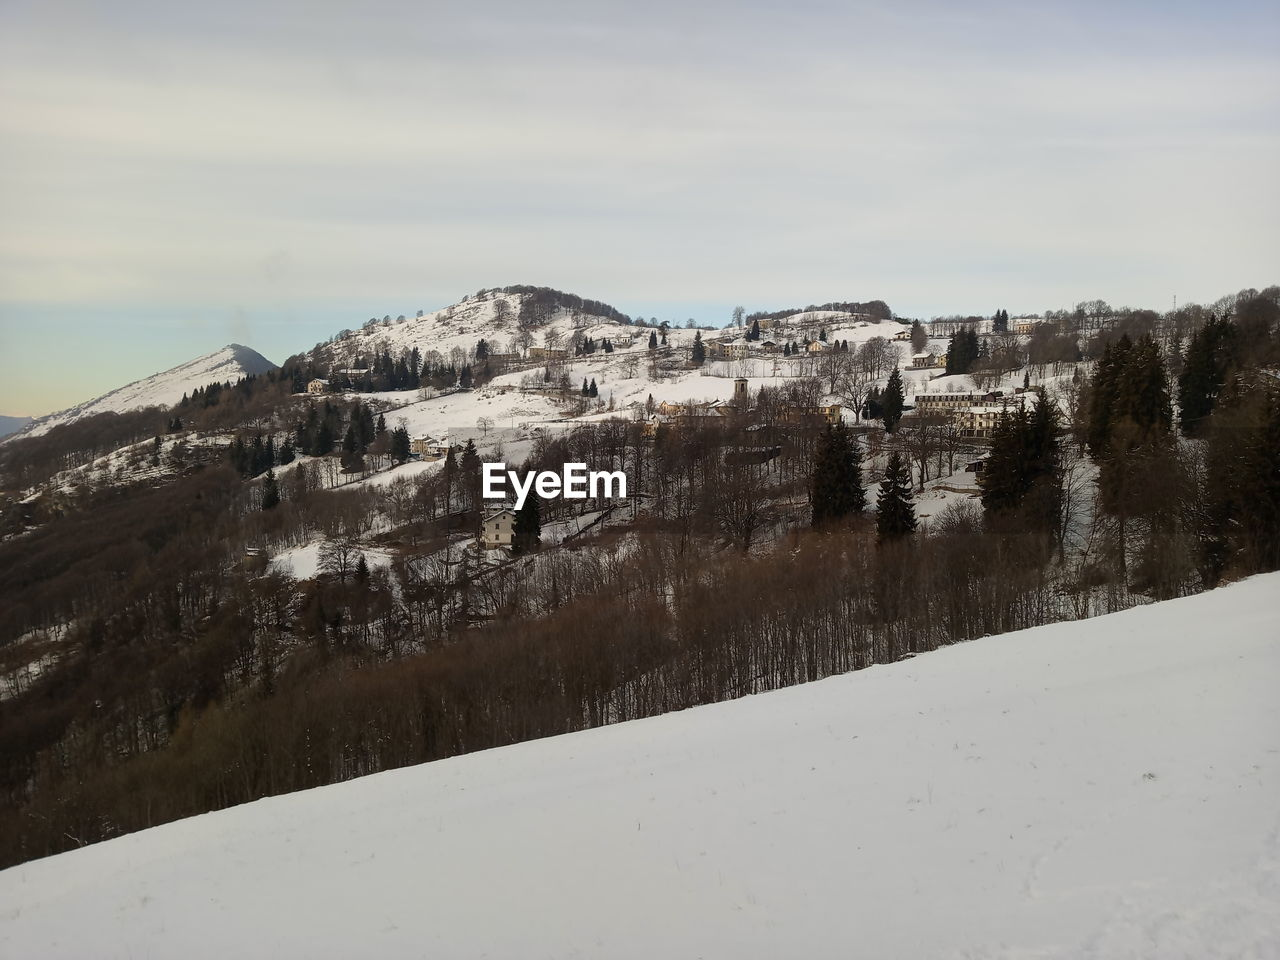 Pictures from Valcava, after some snowing. Valcava Linzone Mountain Italy Italy Italian Countryside Roncola Alpes Snow Snowcapped Mountain Italian Mountains Valle Imagna Imagna Valley Valle San Martino Lecco